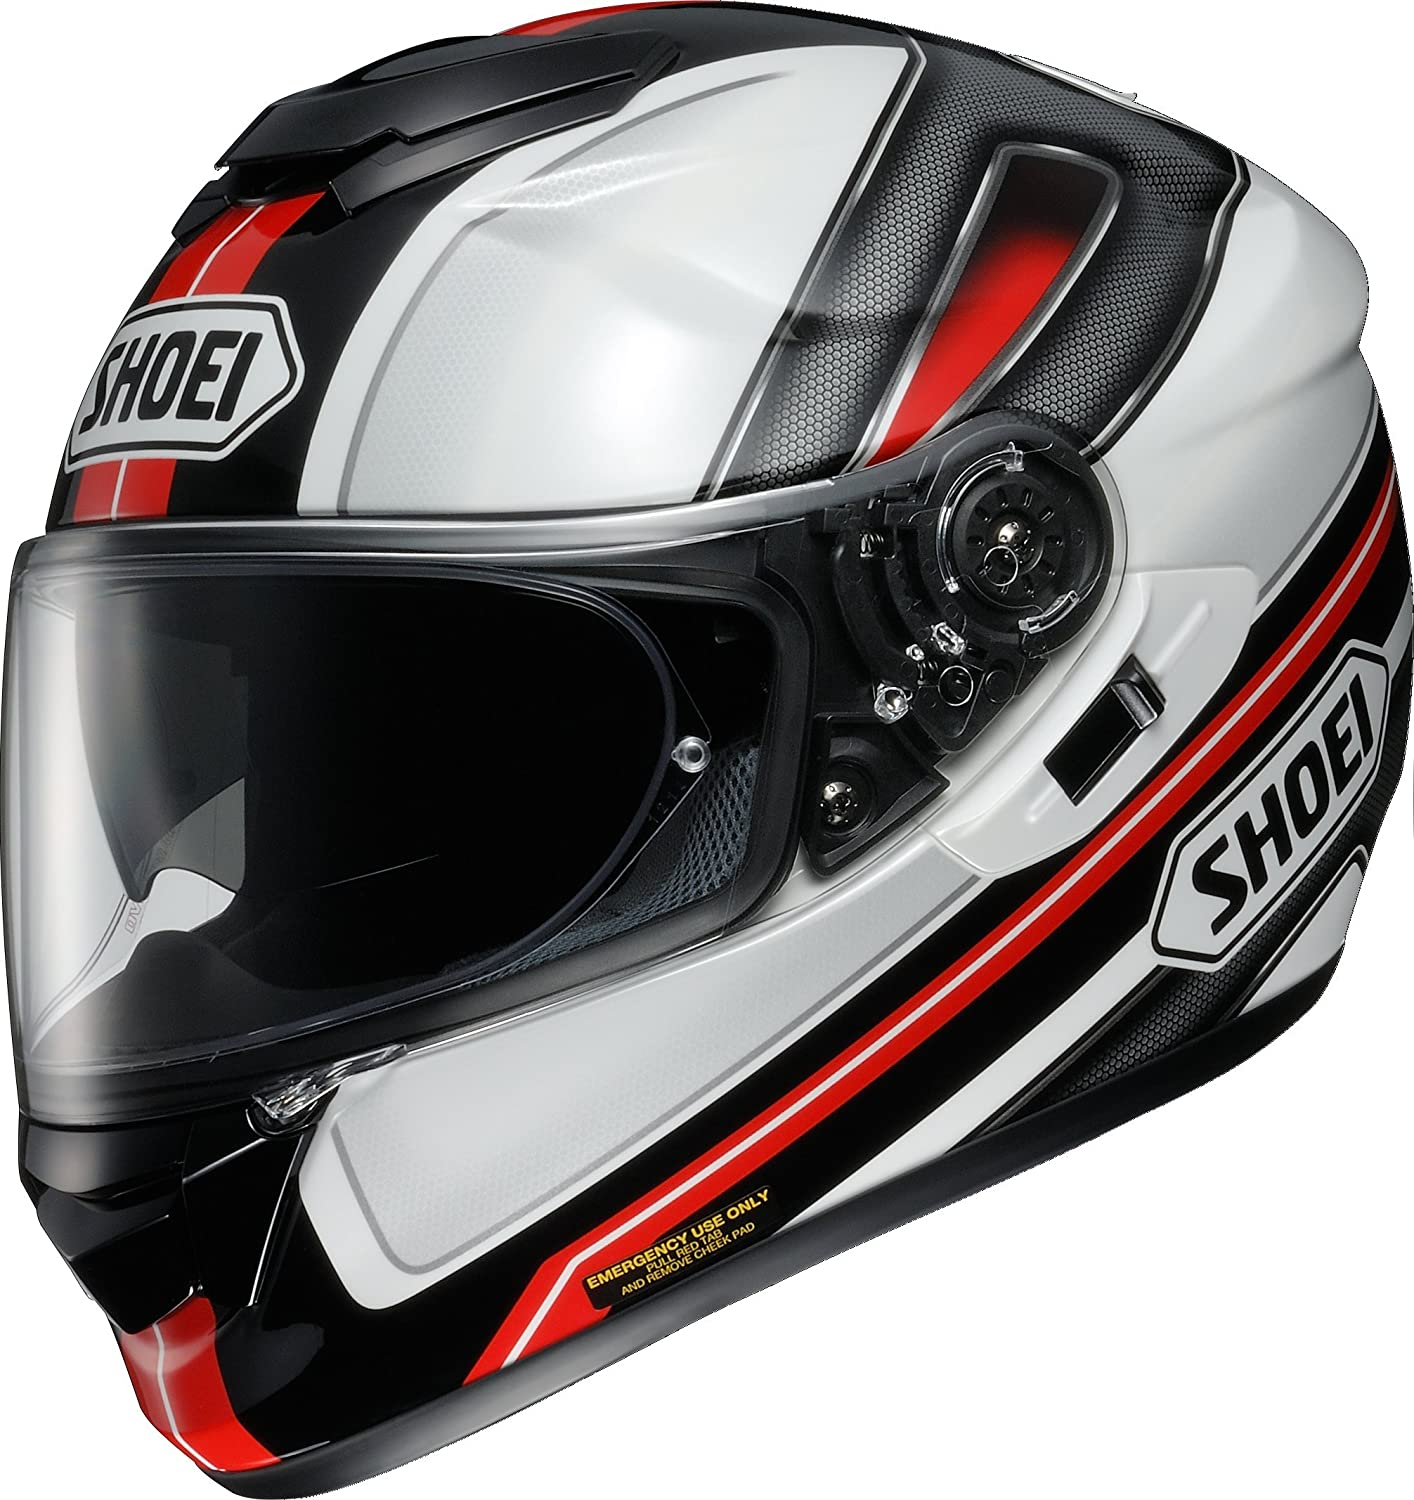 Amazon.com: Shoei helmet GT-Air DAUNTLESS (Dauntless) TC-1 (RED / WHITE) L (59cm) -: Automotive